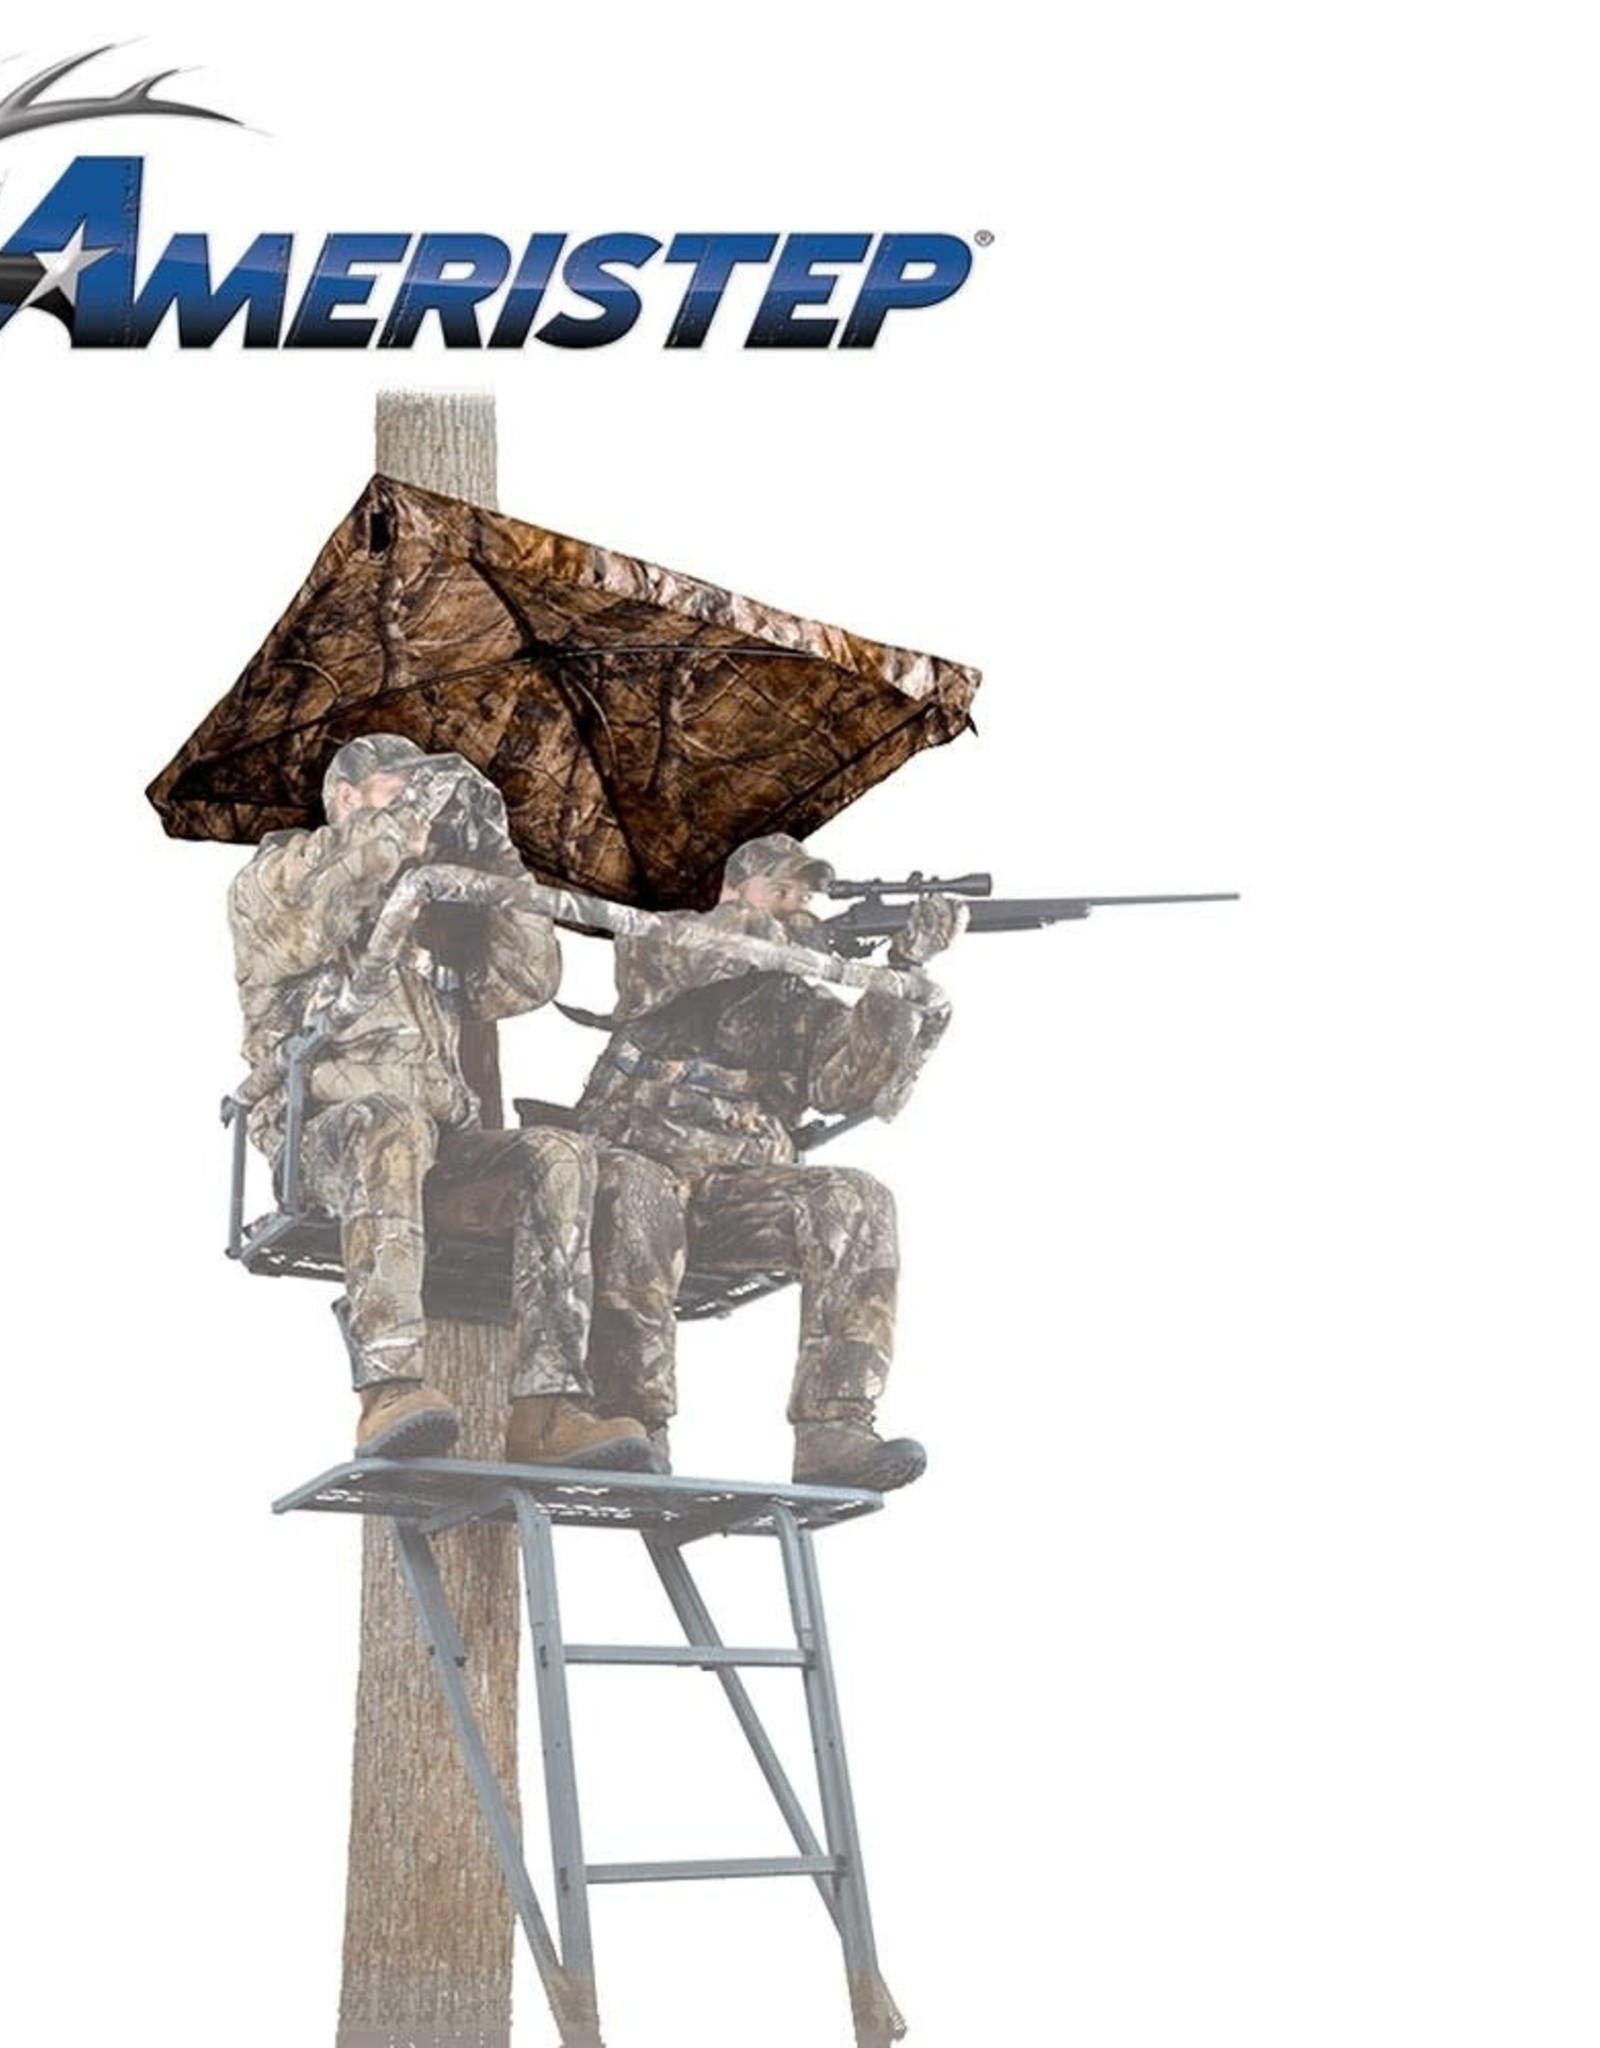 Ameristep Tree Stand Umbrella Cover